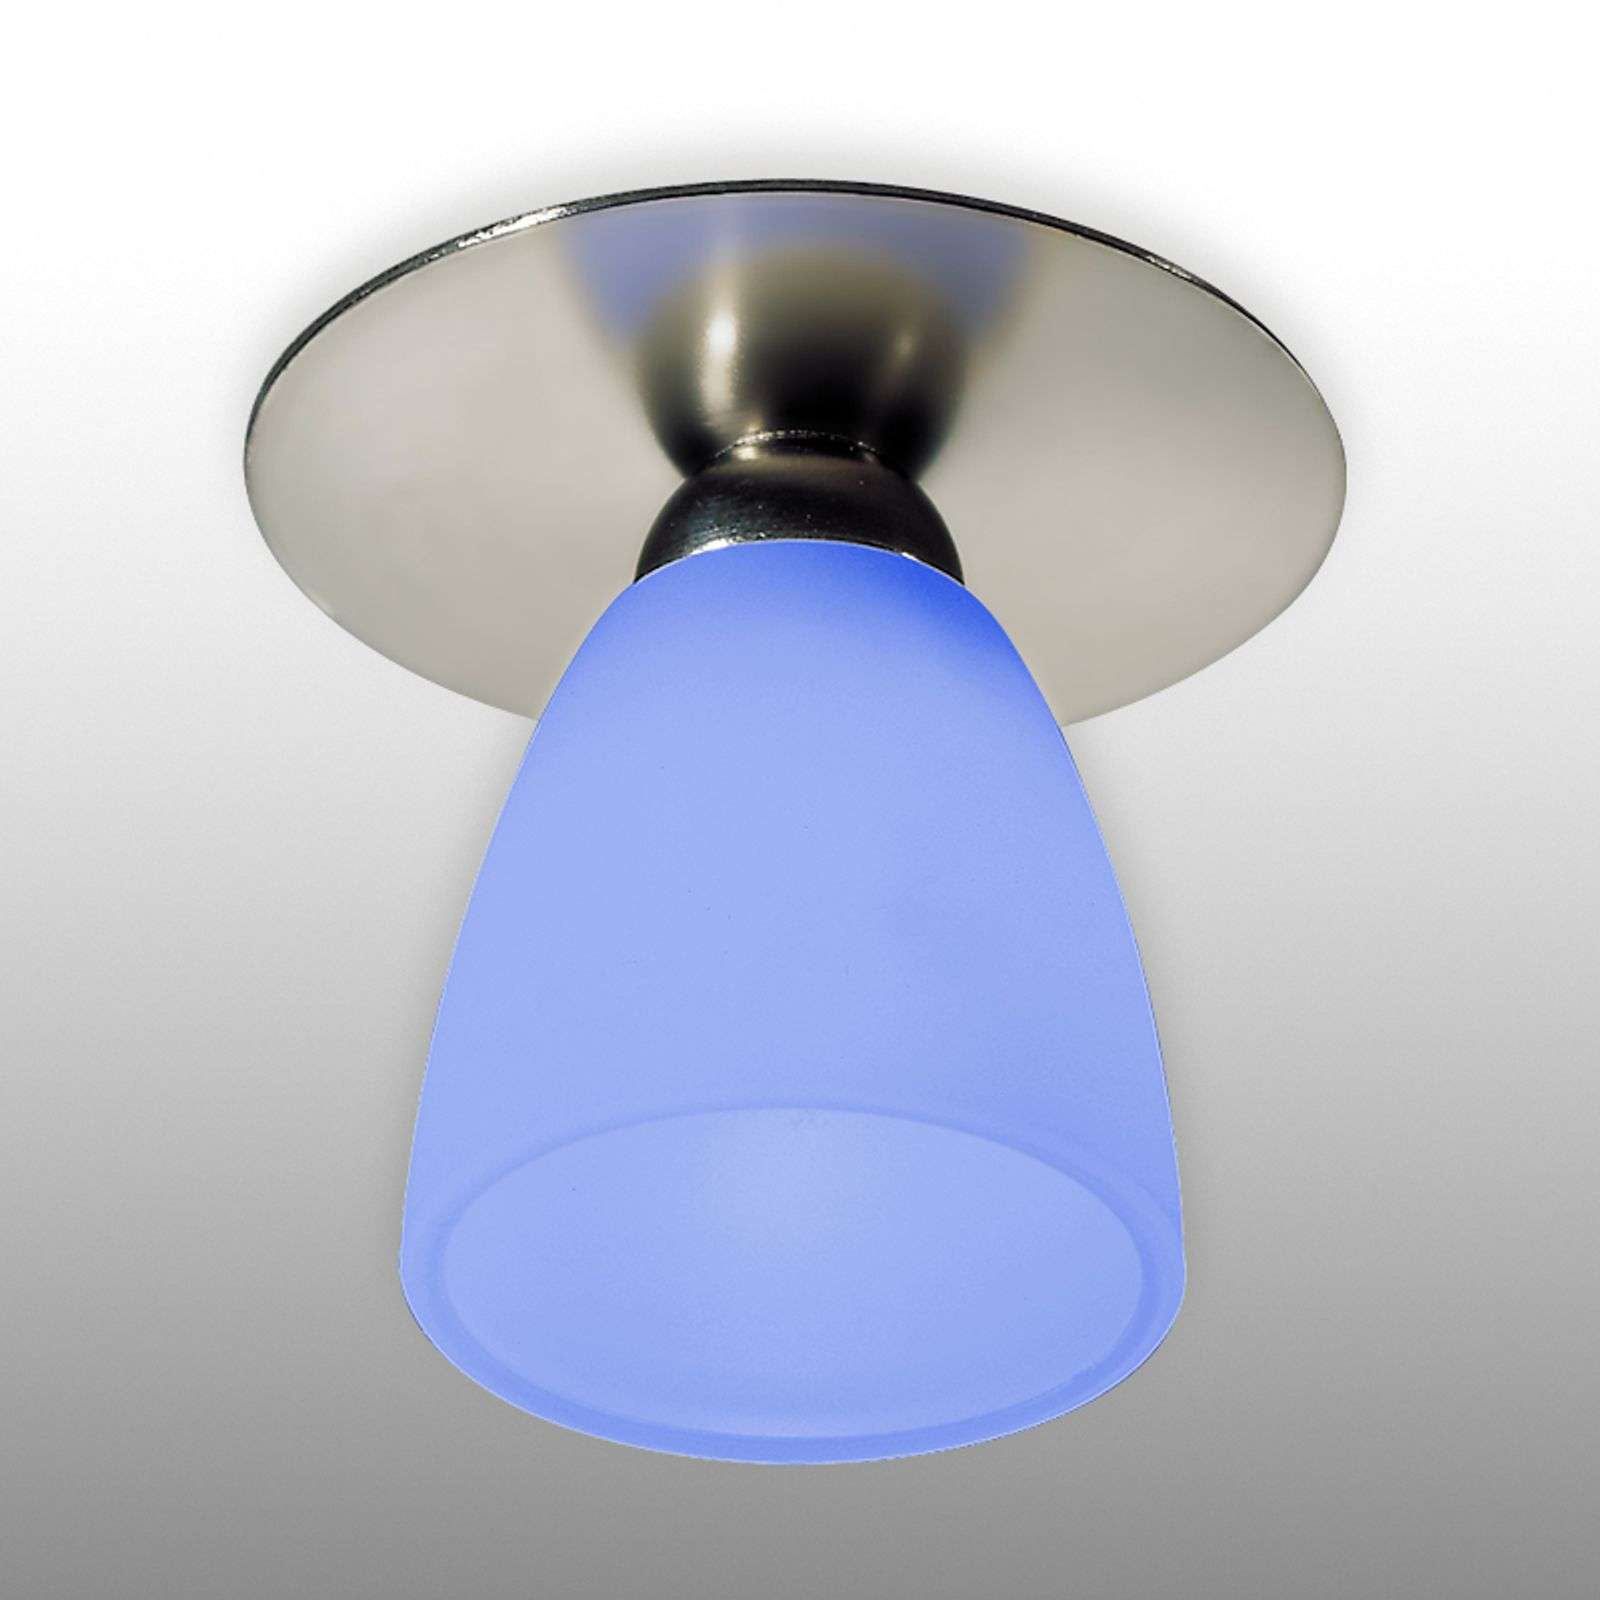 Downlight ARTE nichel satinato, vetro blu